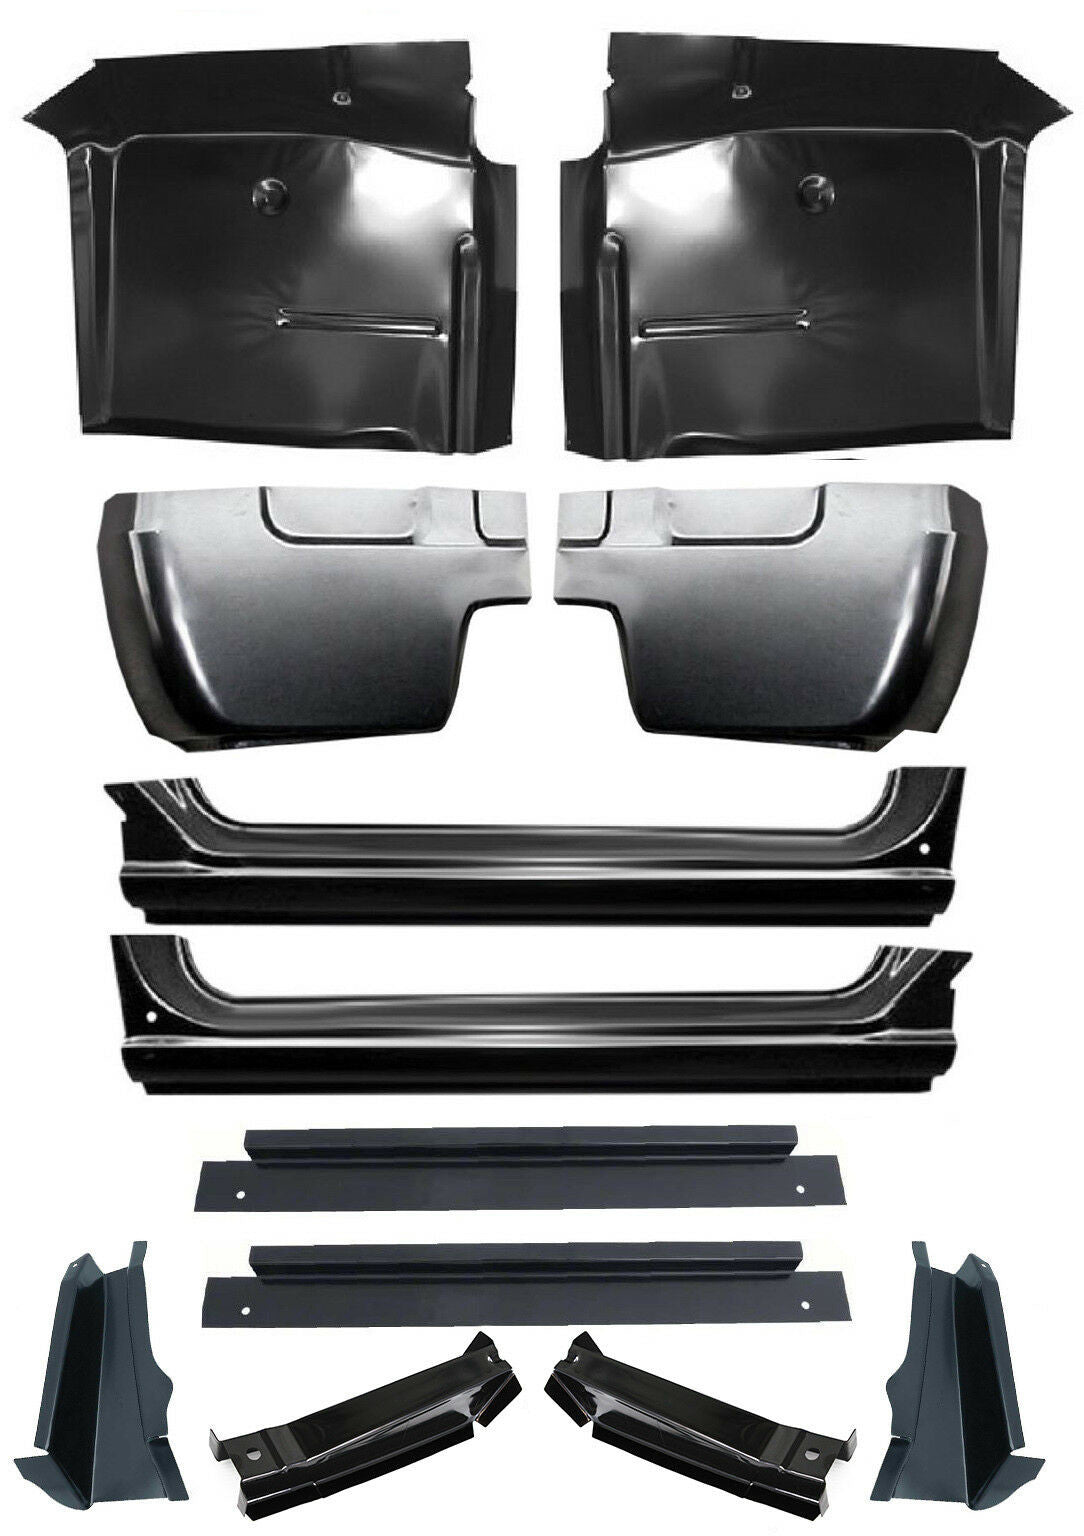 67 72 Chevy C10 Truck Cab Corner Rocker Panel Slip On Cab Mount Floor Jlfabrication